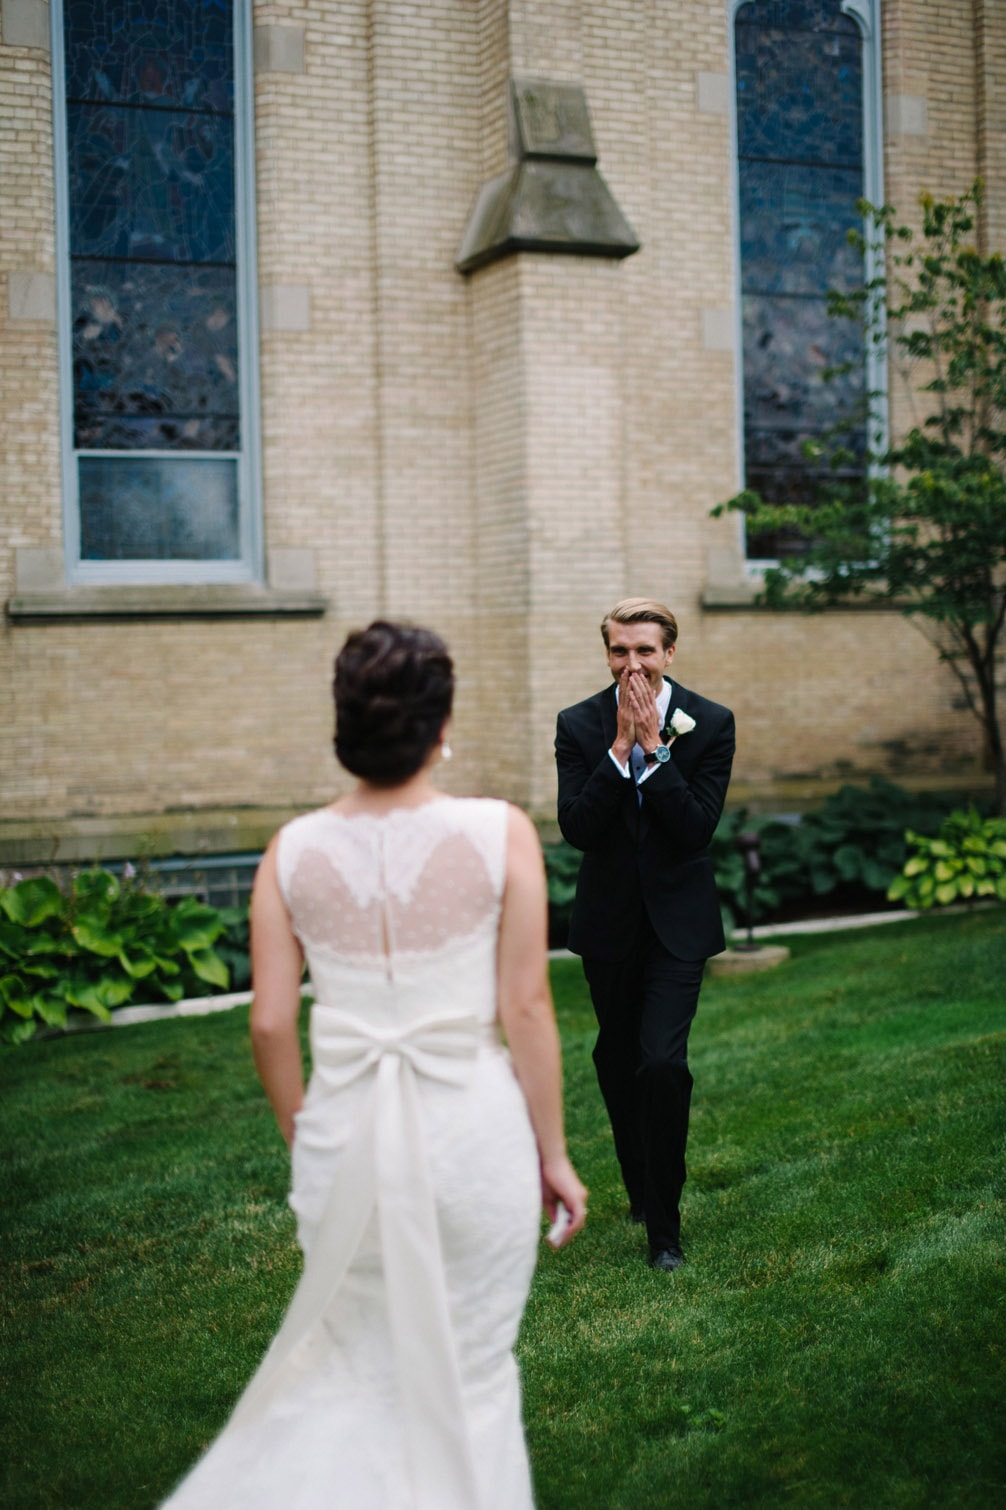 Claire and Matthew's Classic Amway Grand Wedding